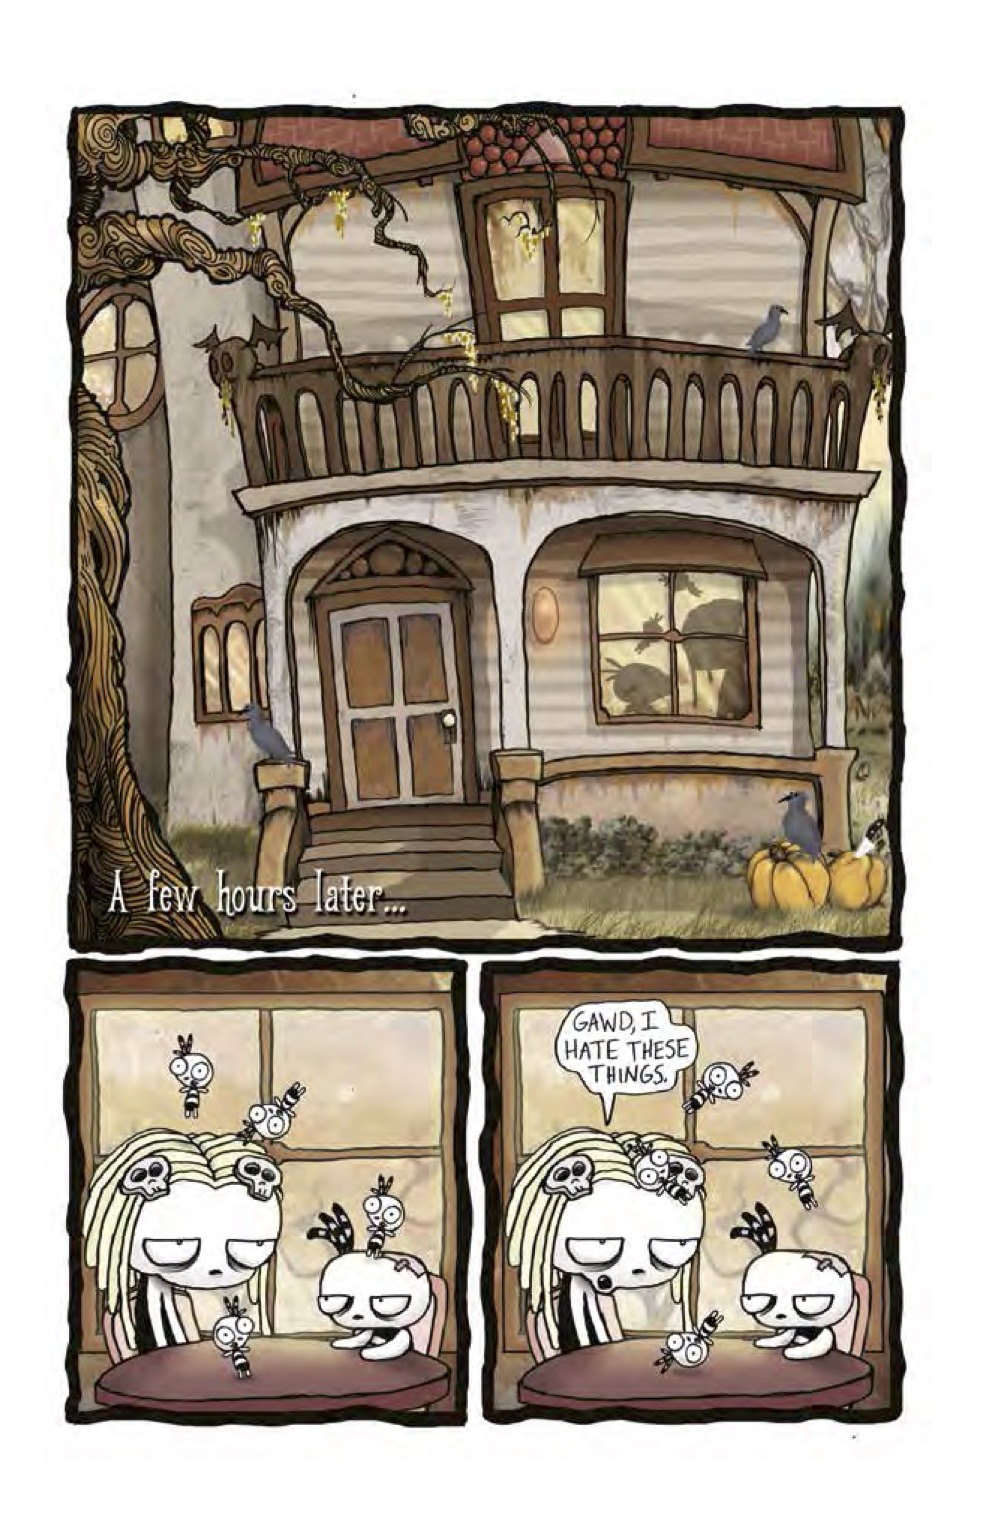 Lenore_Pooty Page 2